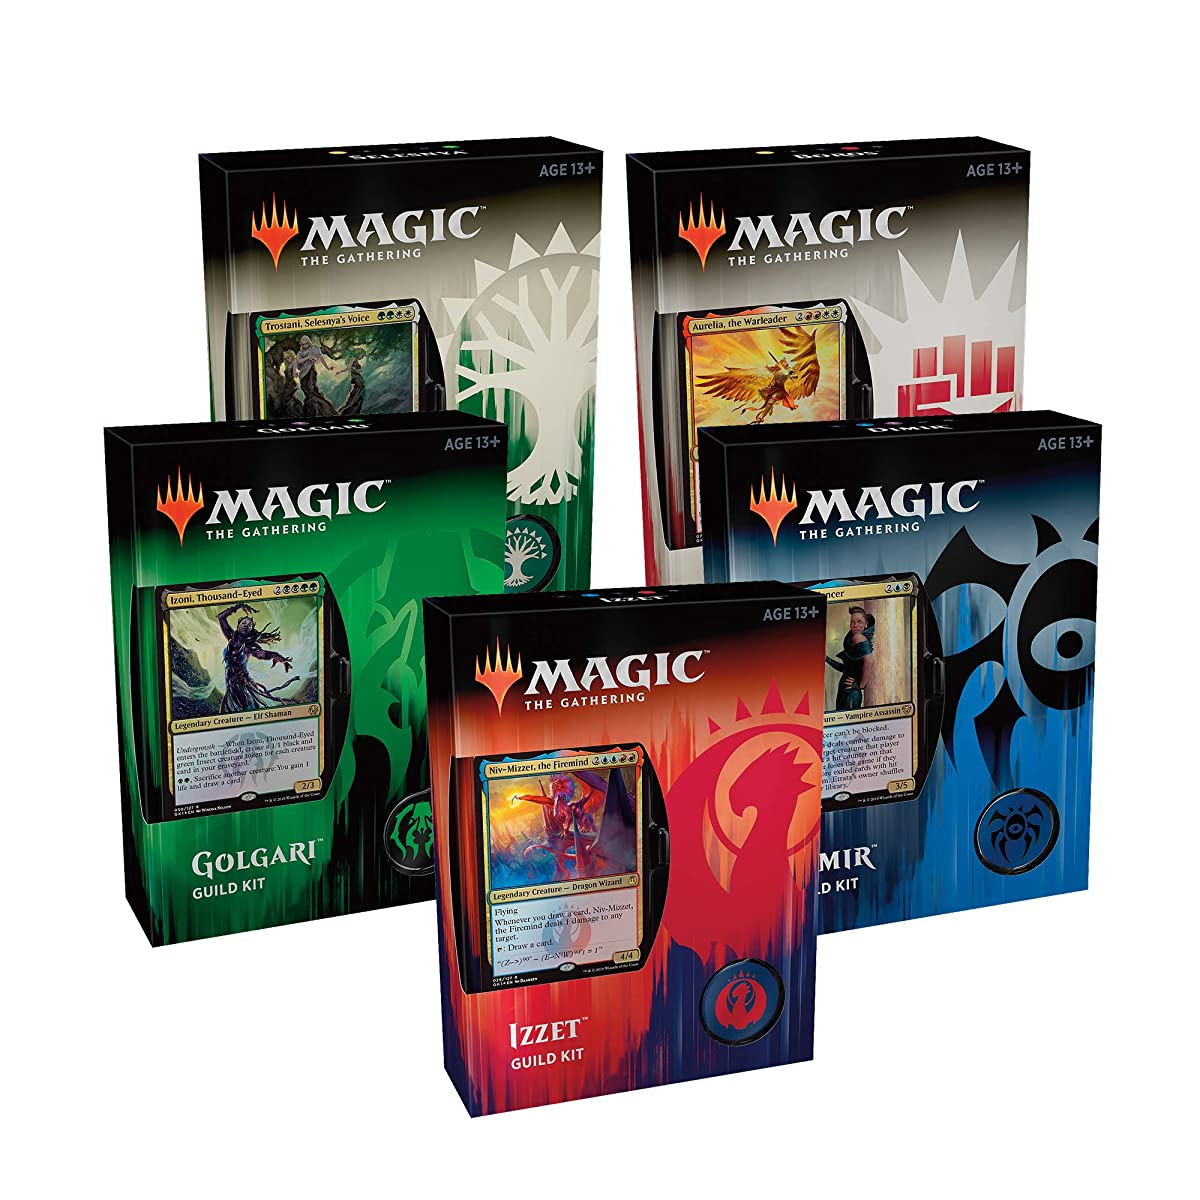 Magic: The Gathering Guilds of Ravnica Guild Kits   5 Ready-to-Play 60-Card Decks   Accessories   Factory Sealed